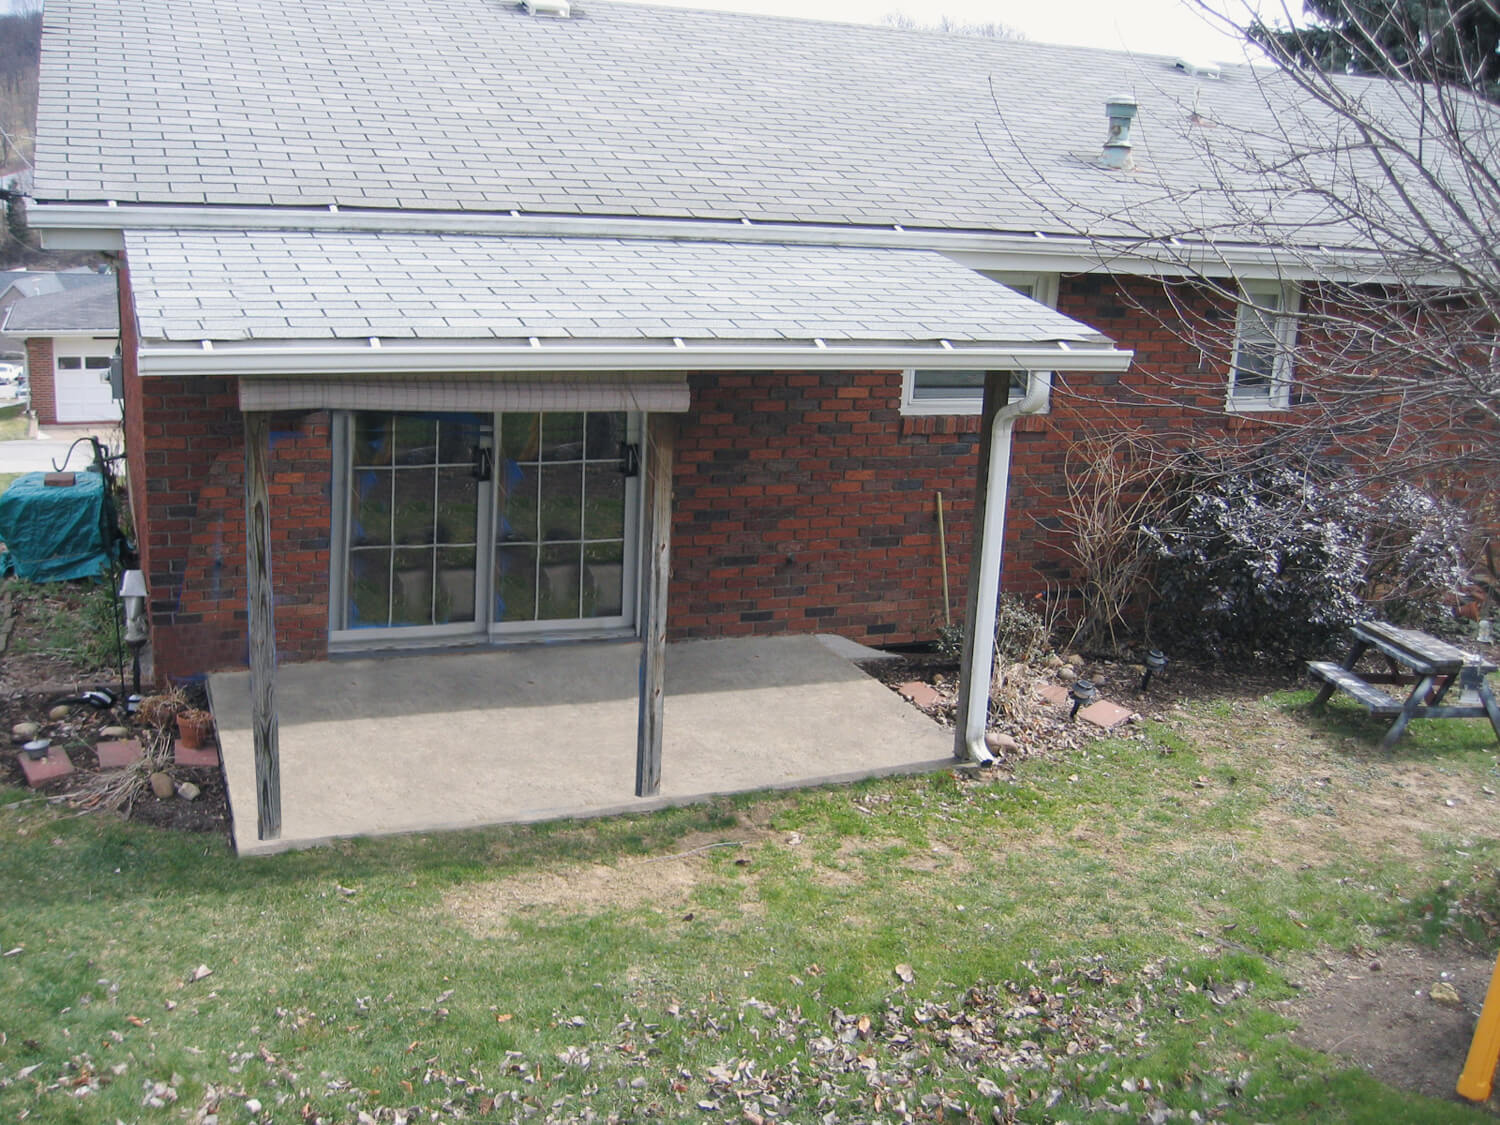 sunroom-des-moines-ia-3a-FIBefore - Retractable Awnings ...